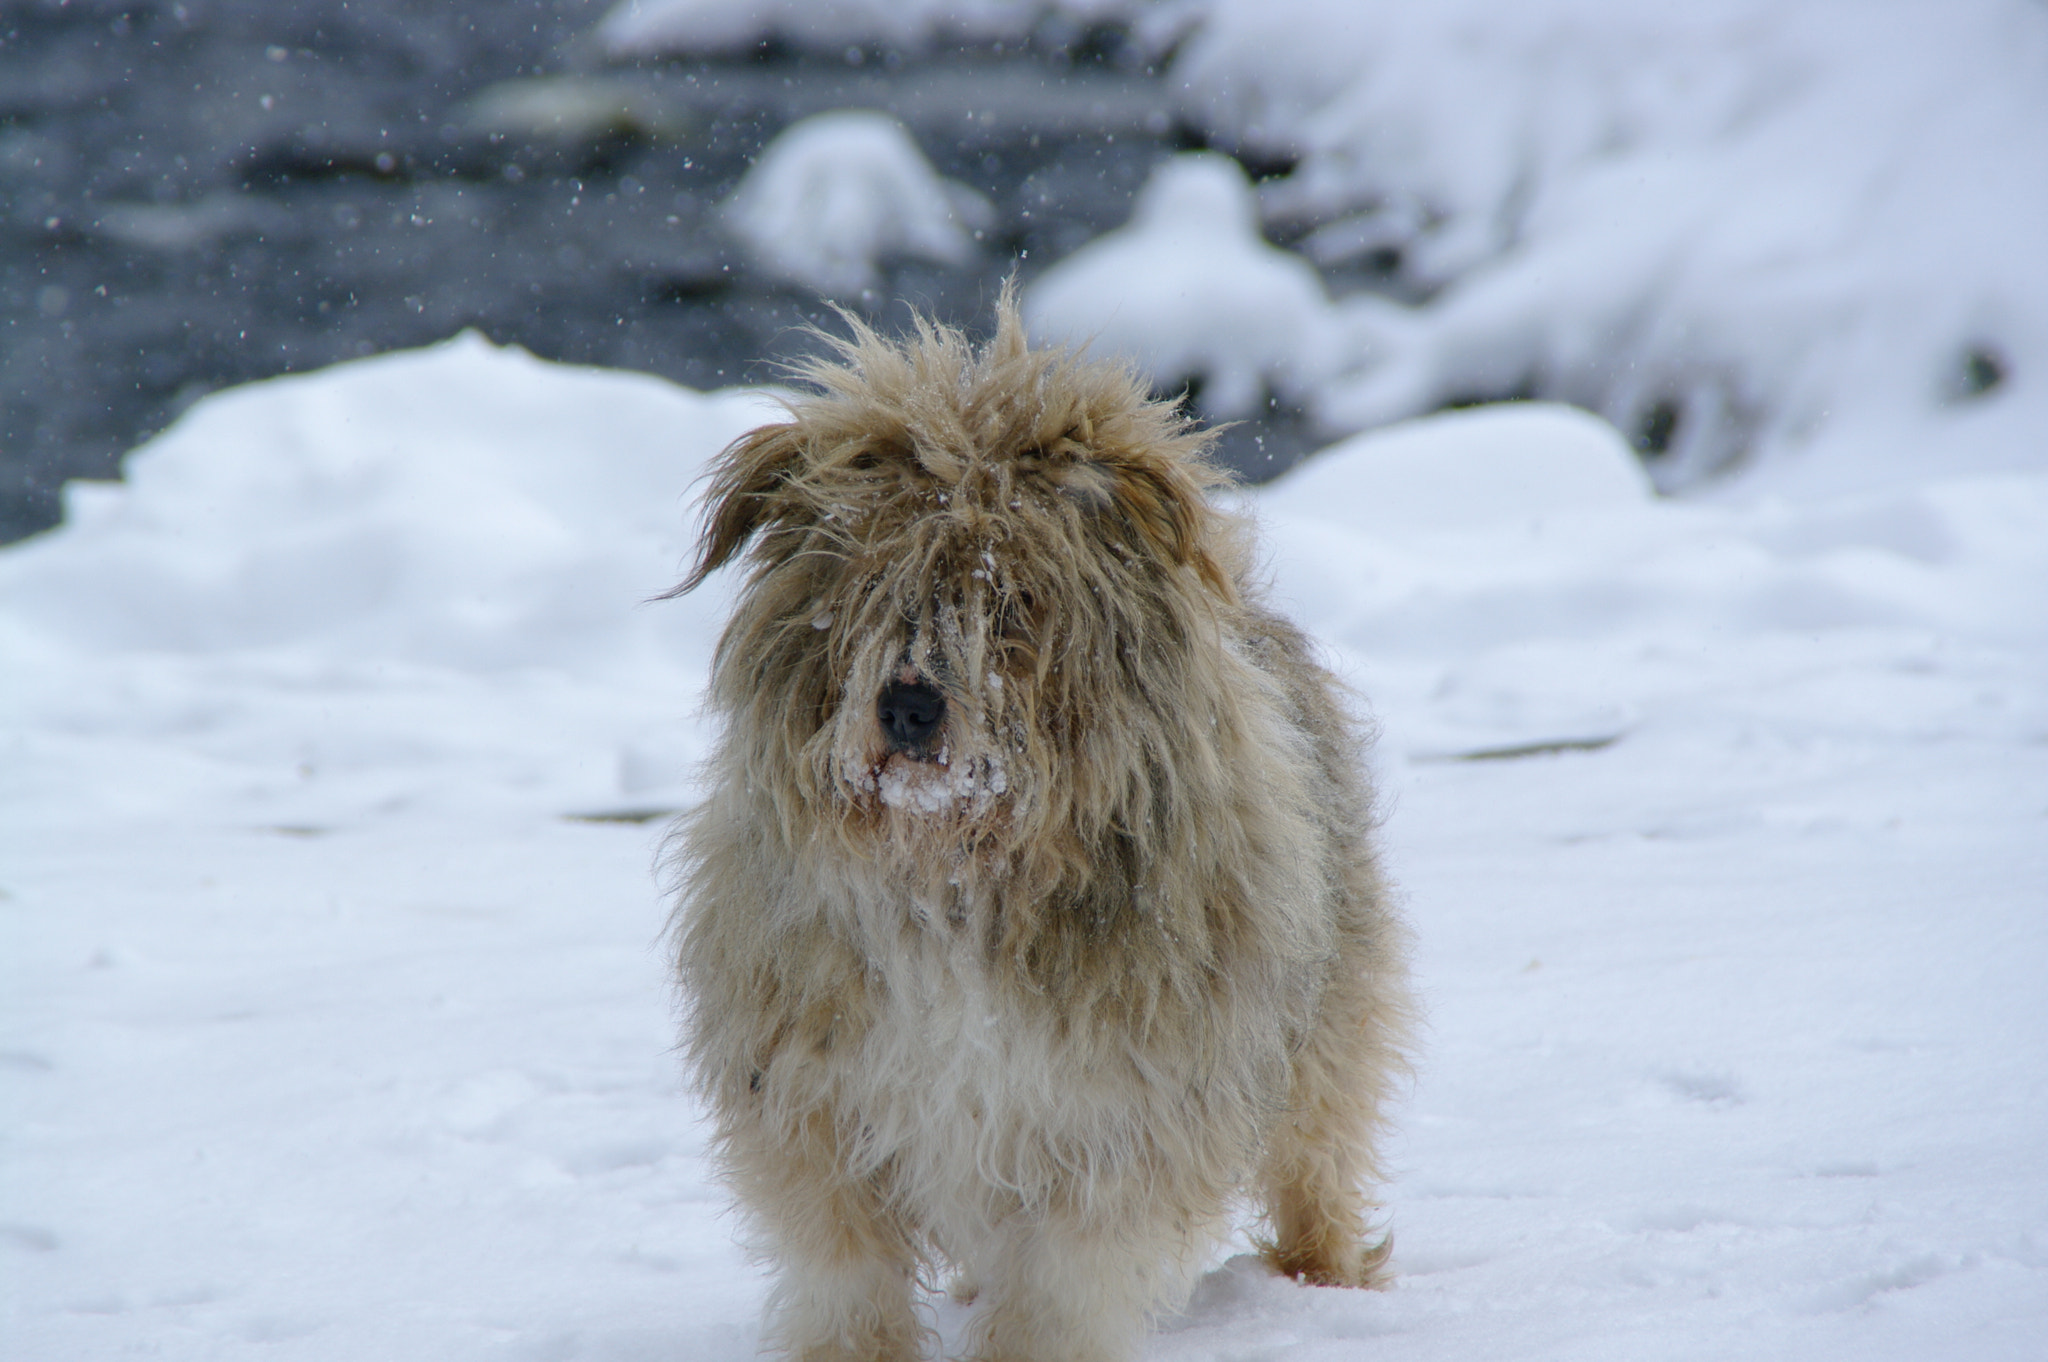 Photograph Frozen puppy by andreyanghel on 500px